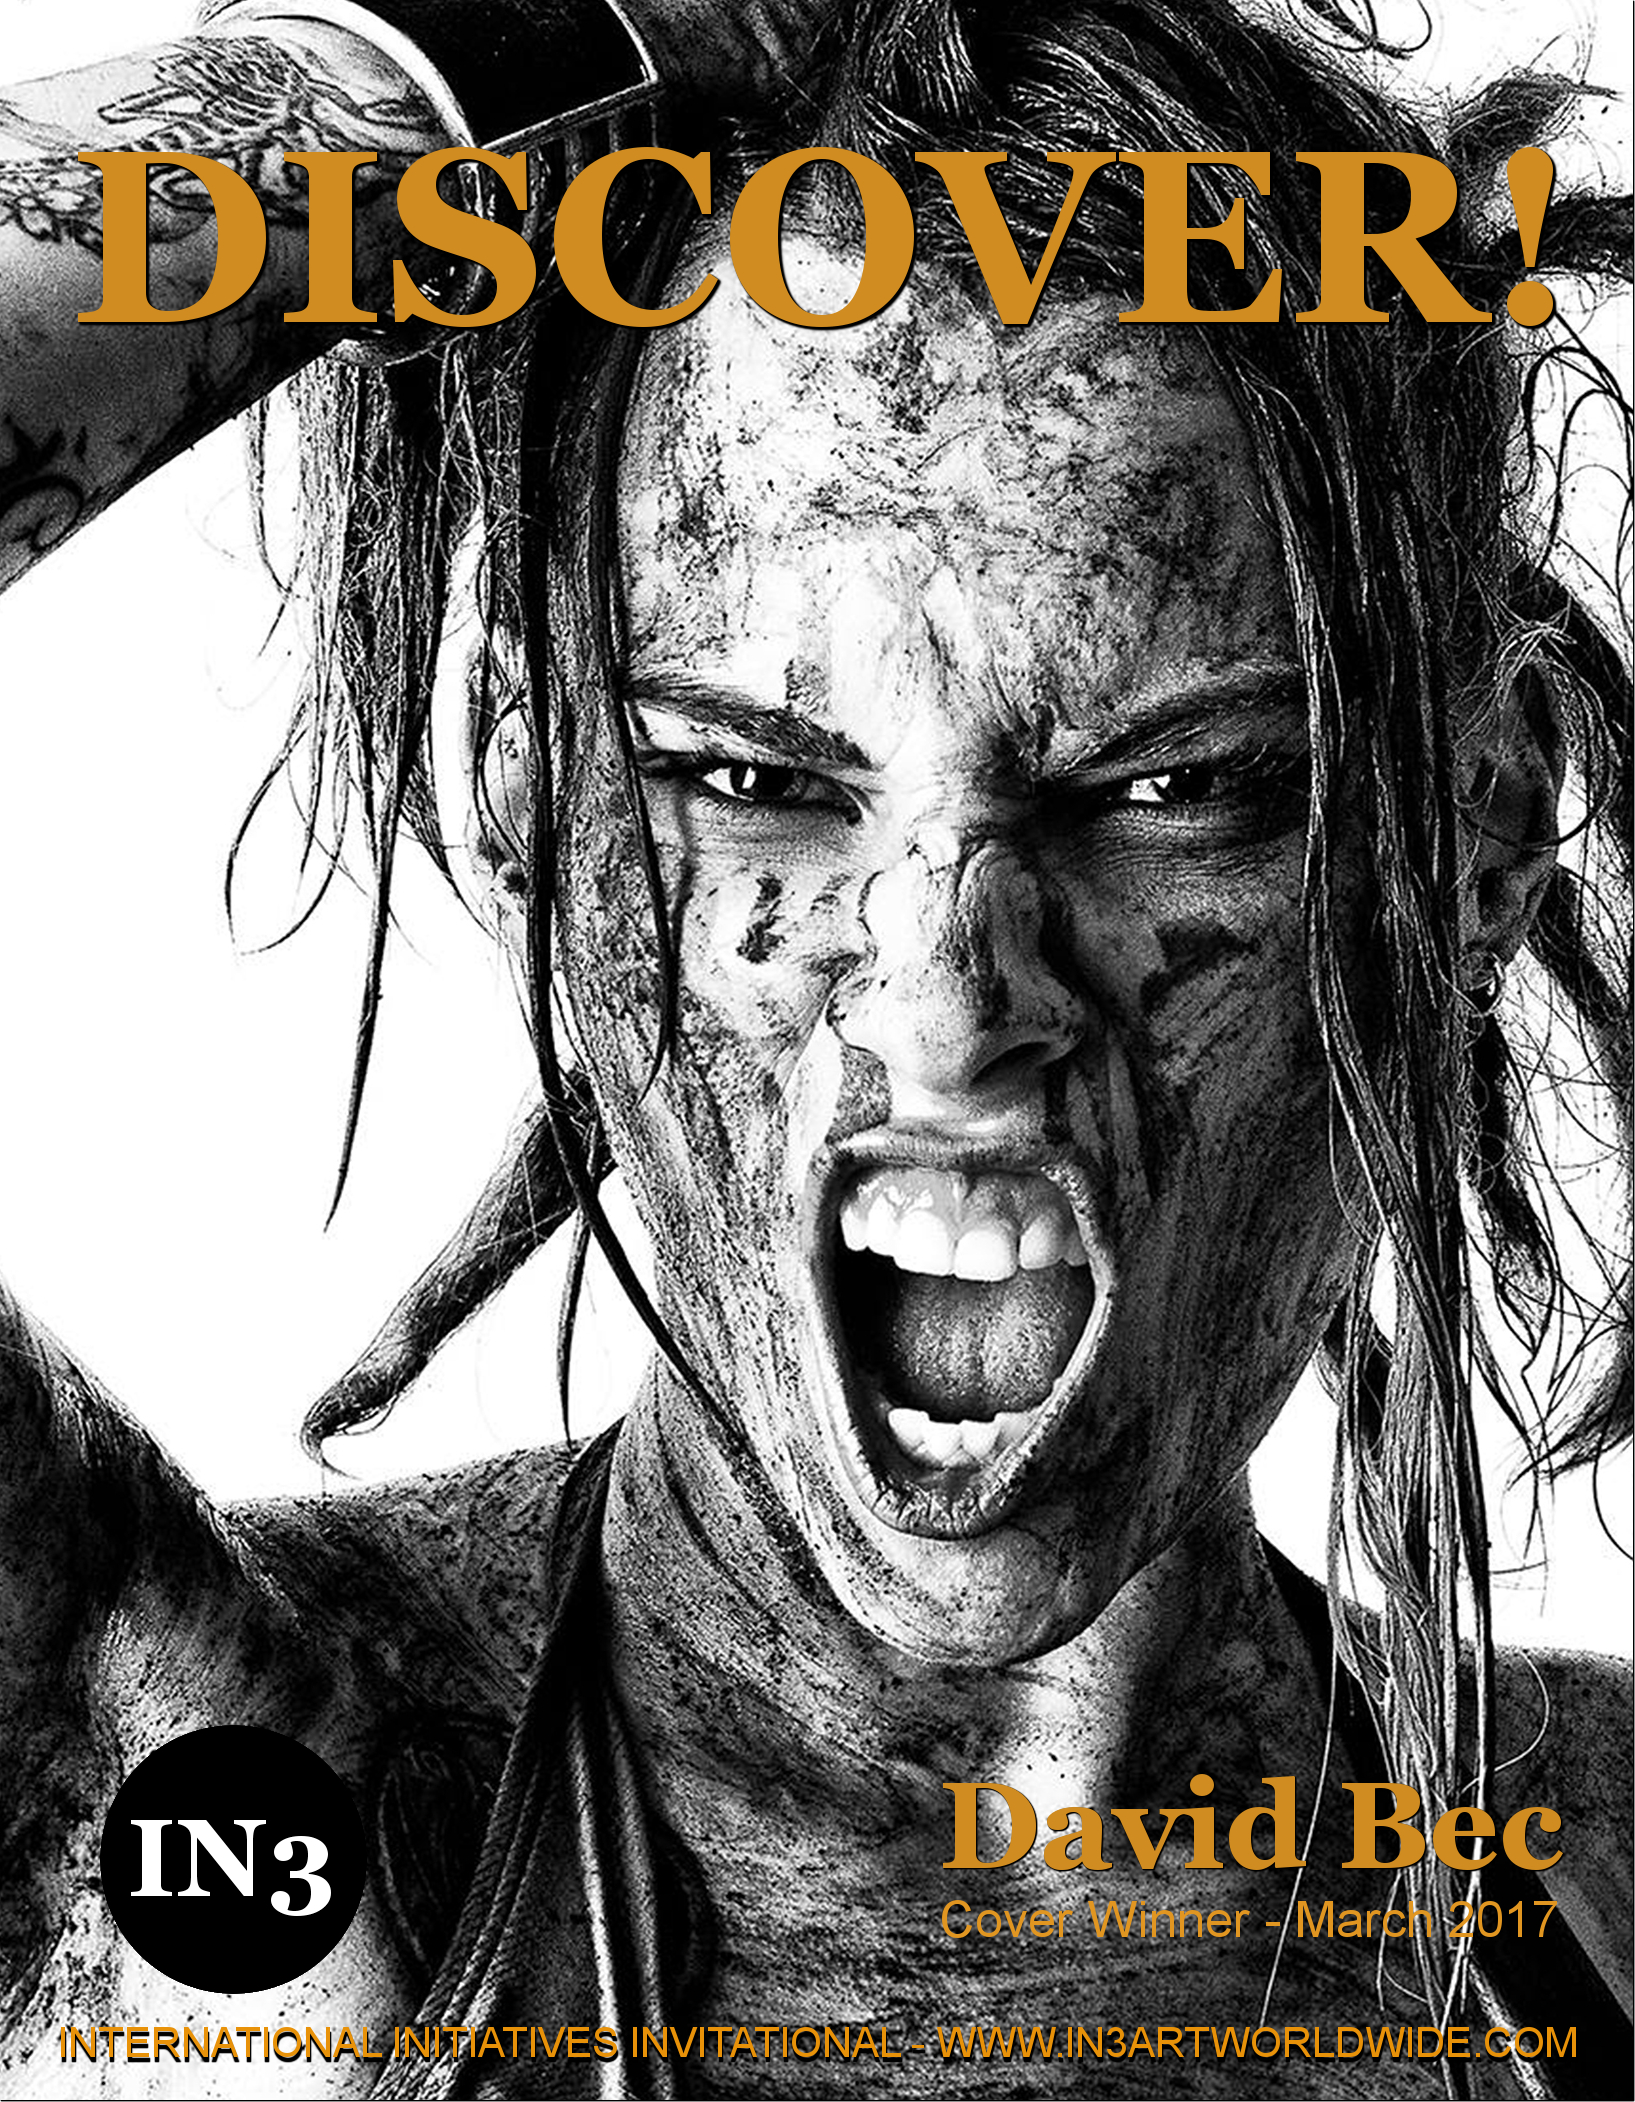 DISCOVER-March 2017- David Bec-3-6-17--2 - Copy.jpg